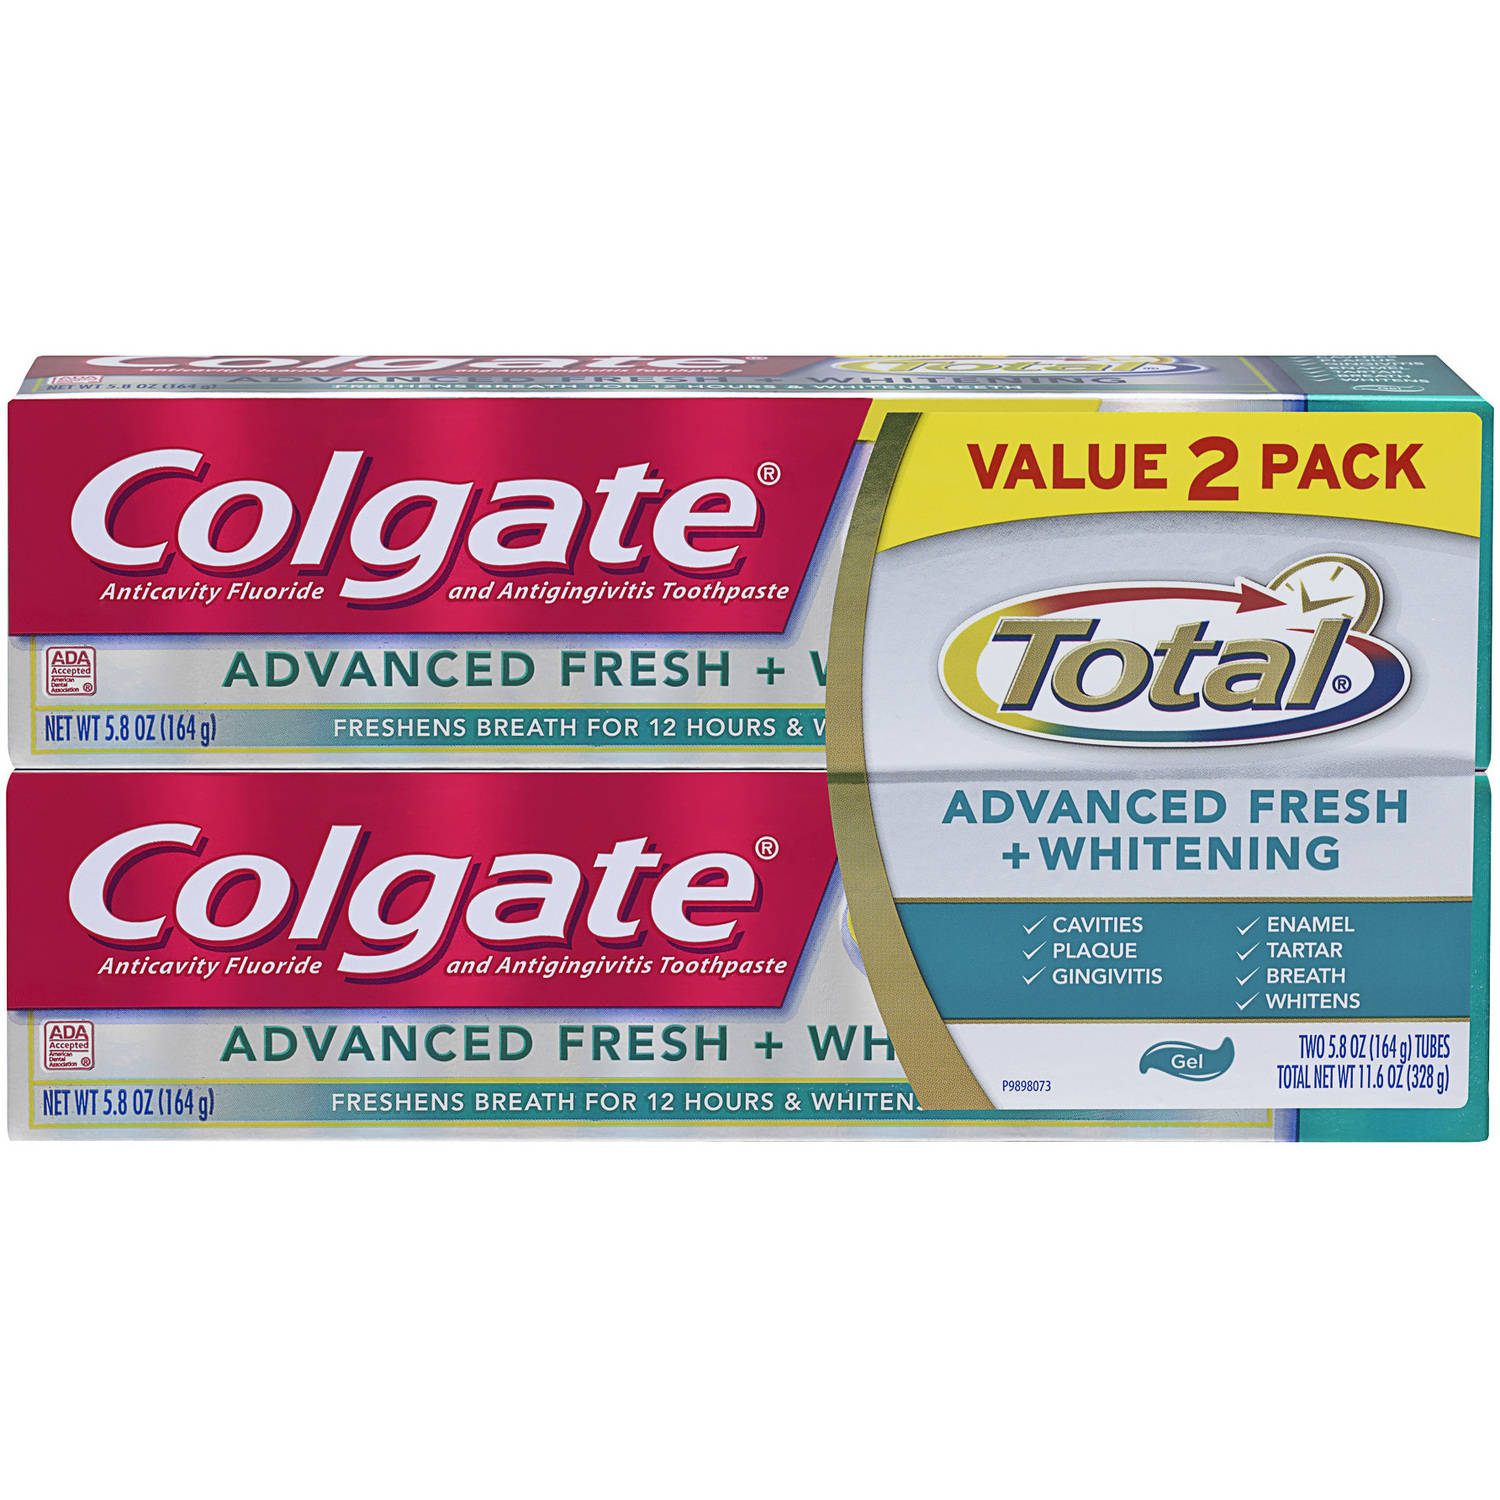 Colgate Total Advanced Fresh Whitening Gel Toothpaste 5.8 Ounce (Pack of 2)